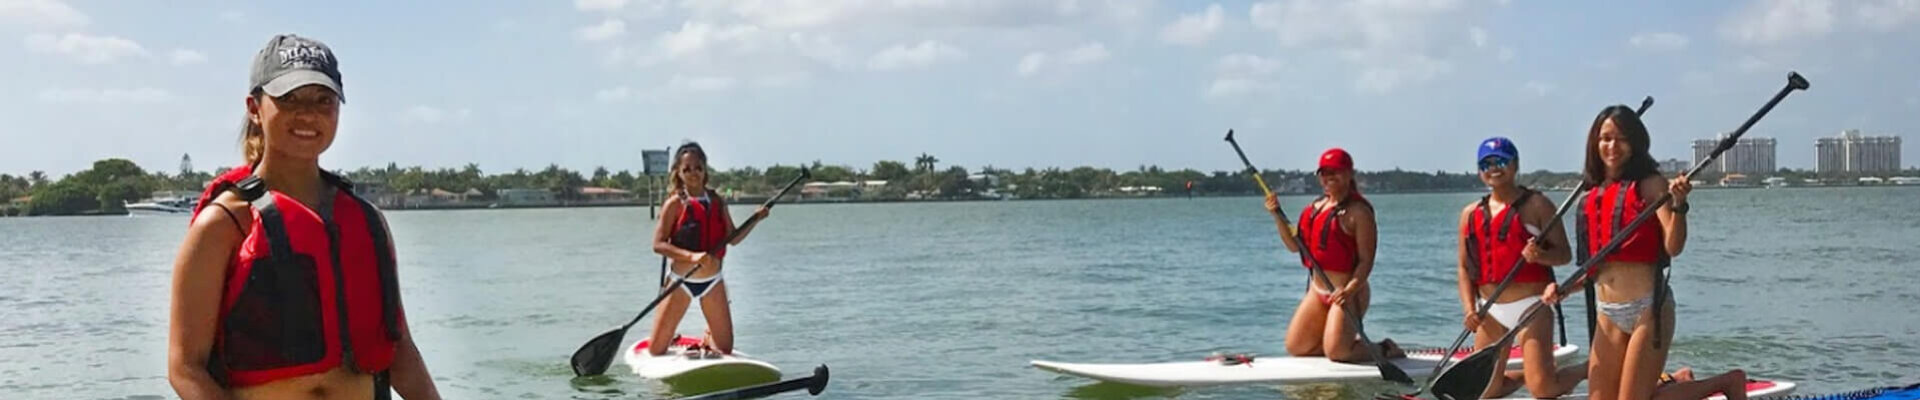 Paddleboard Lessons Miami Beach